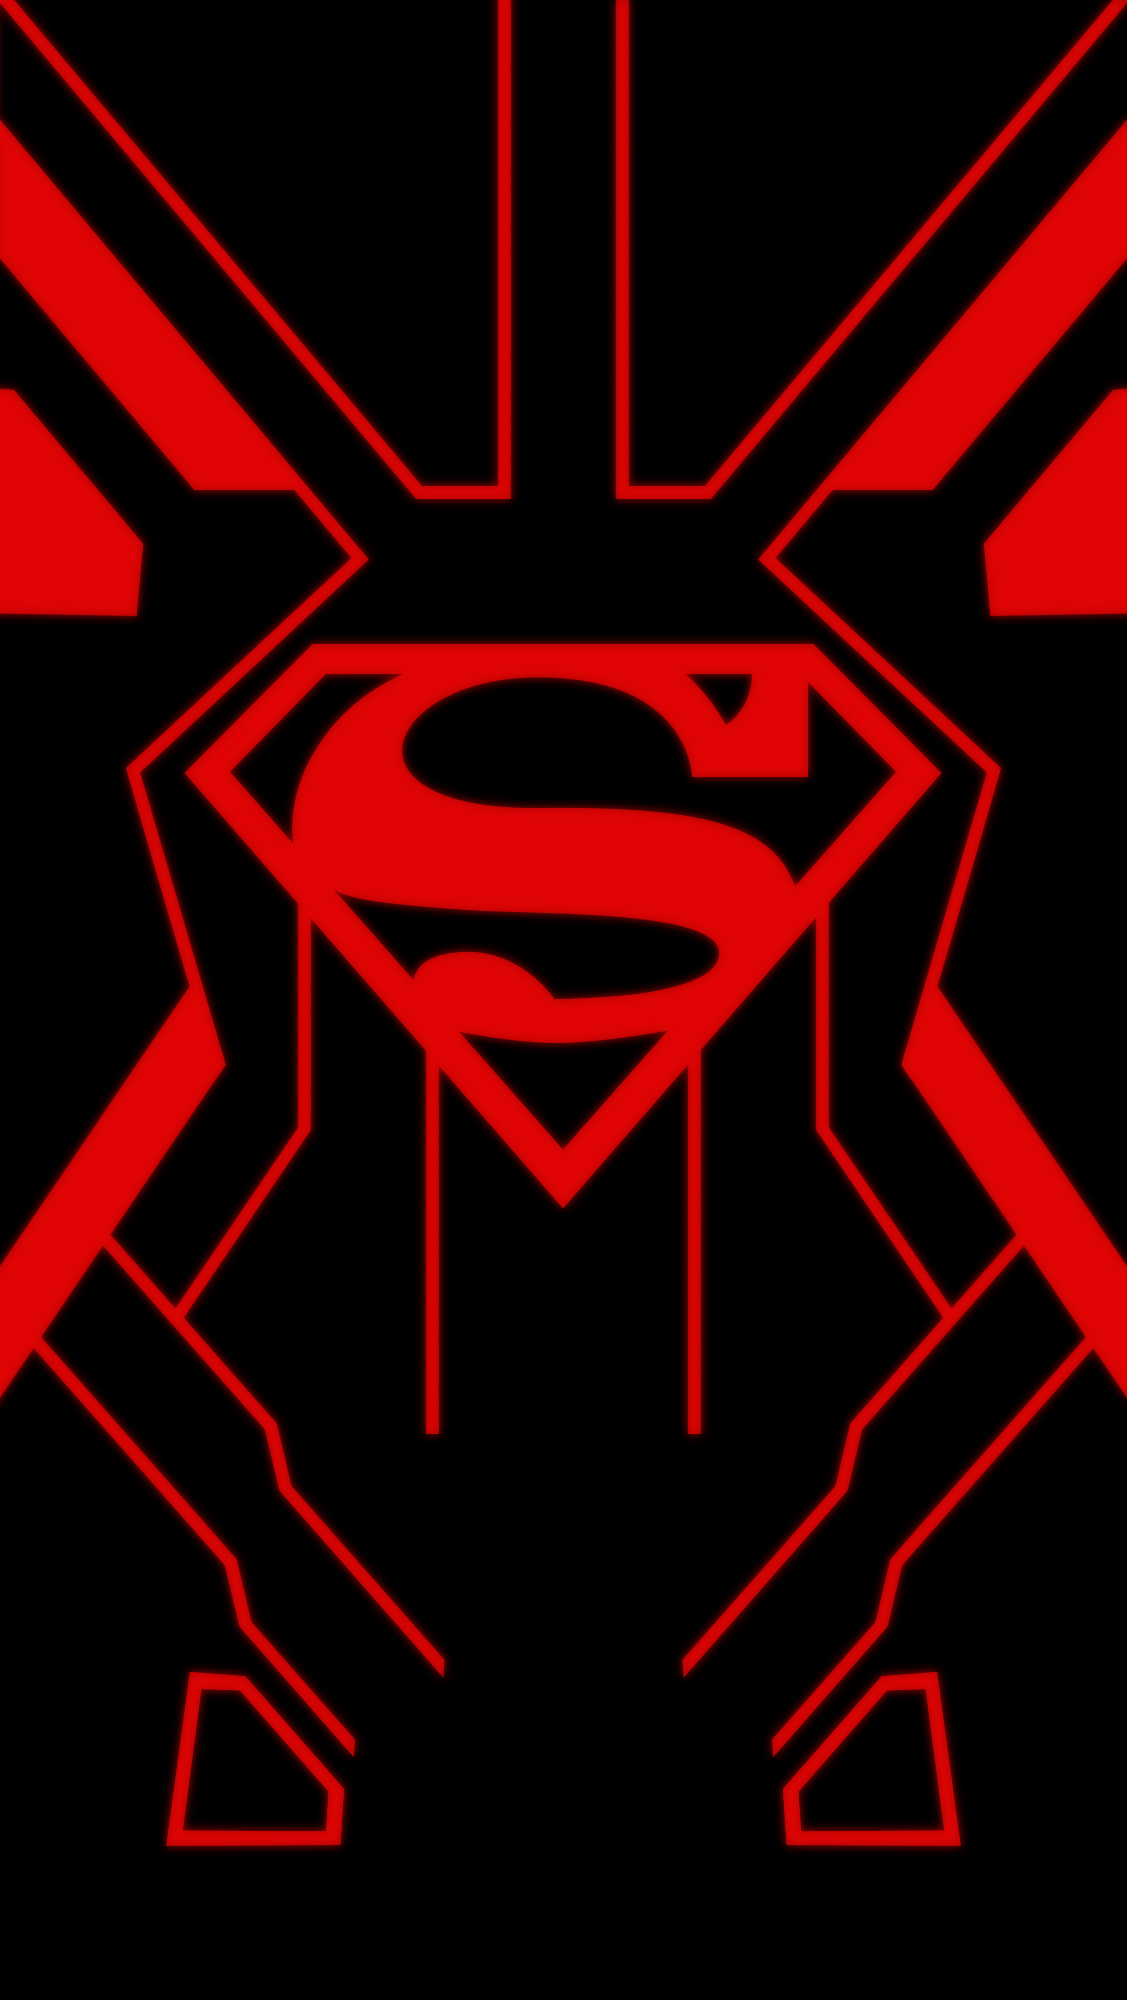 superboy iphone 5 wallpaper by izlacson customization wallpaper iphone 1127x2000